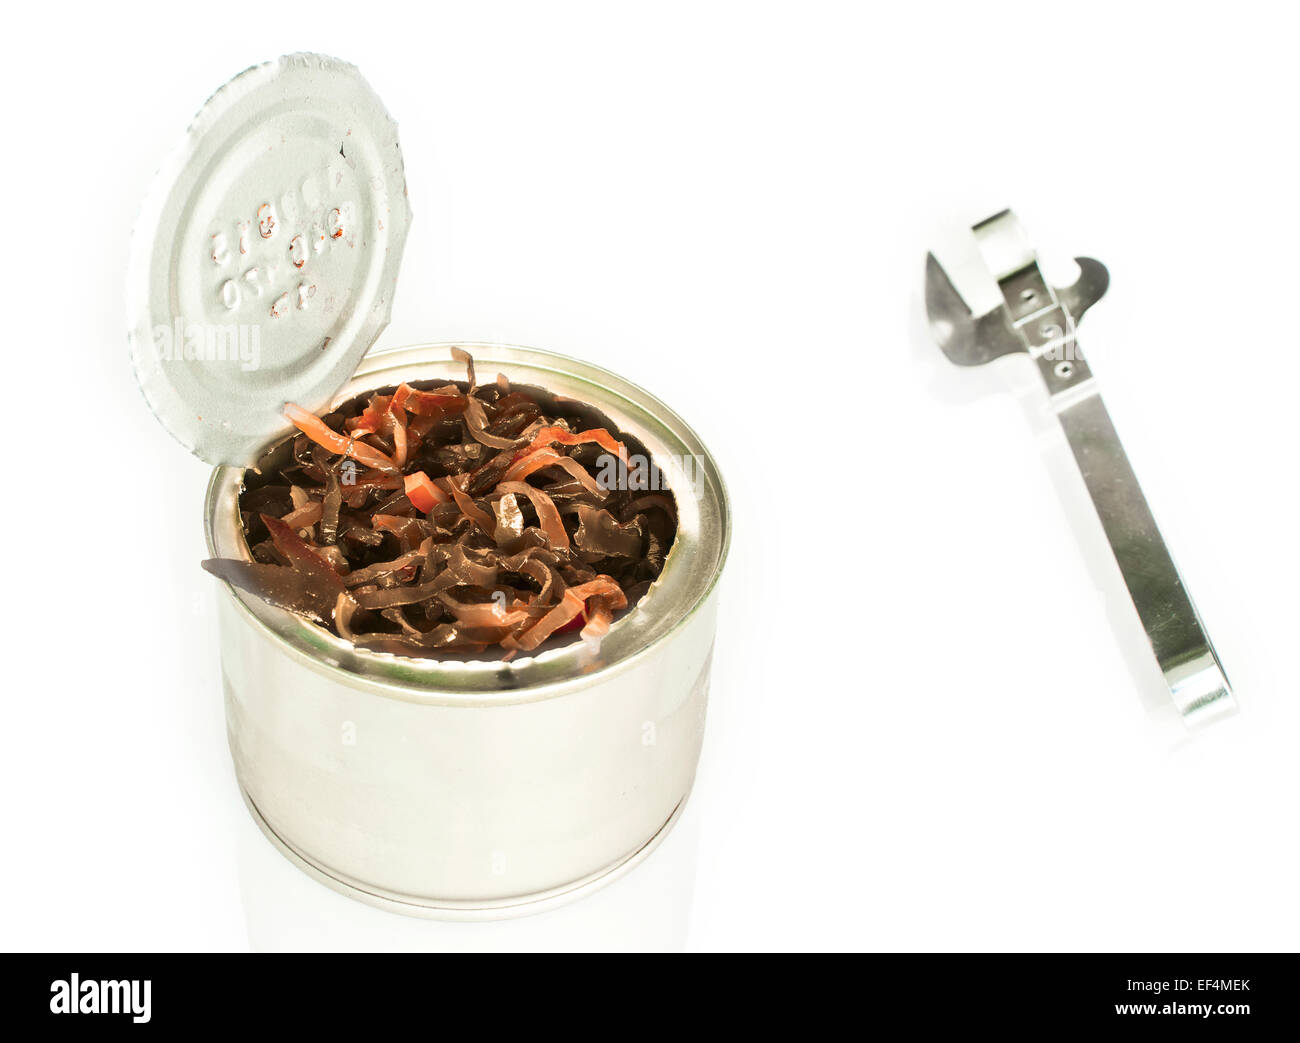 canned seaweeds - Stock Image